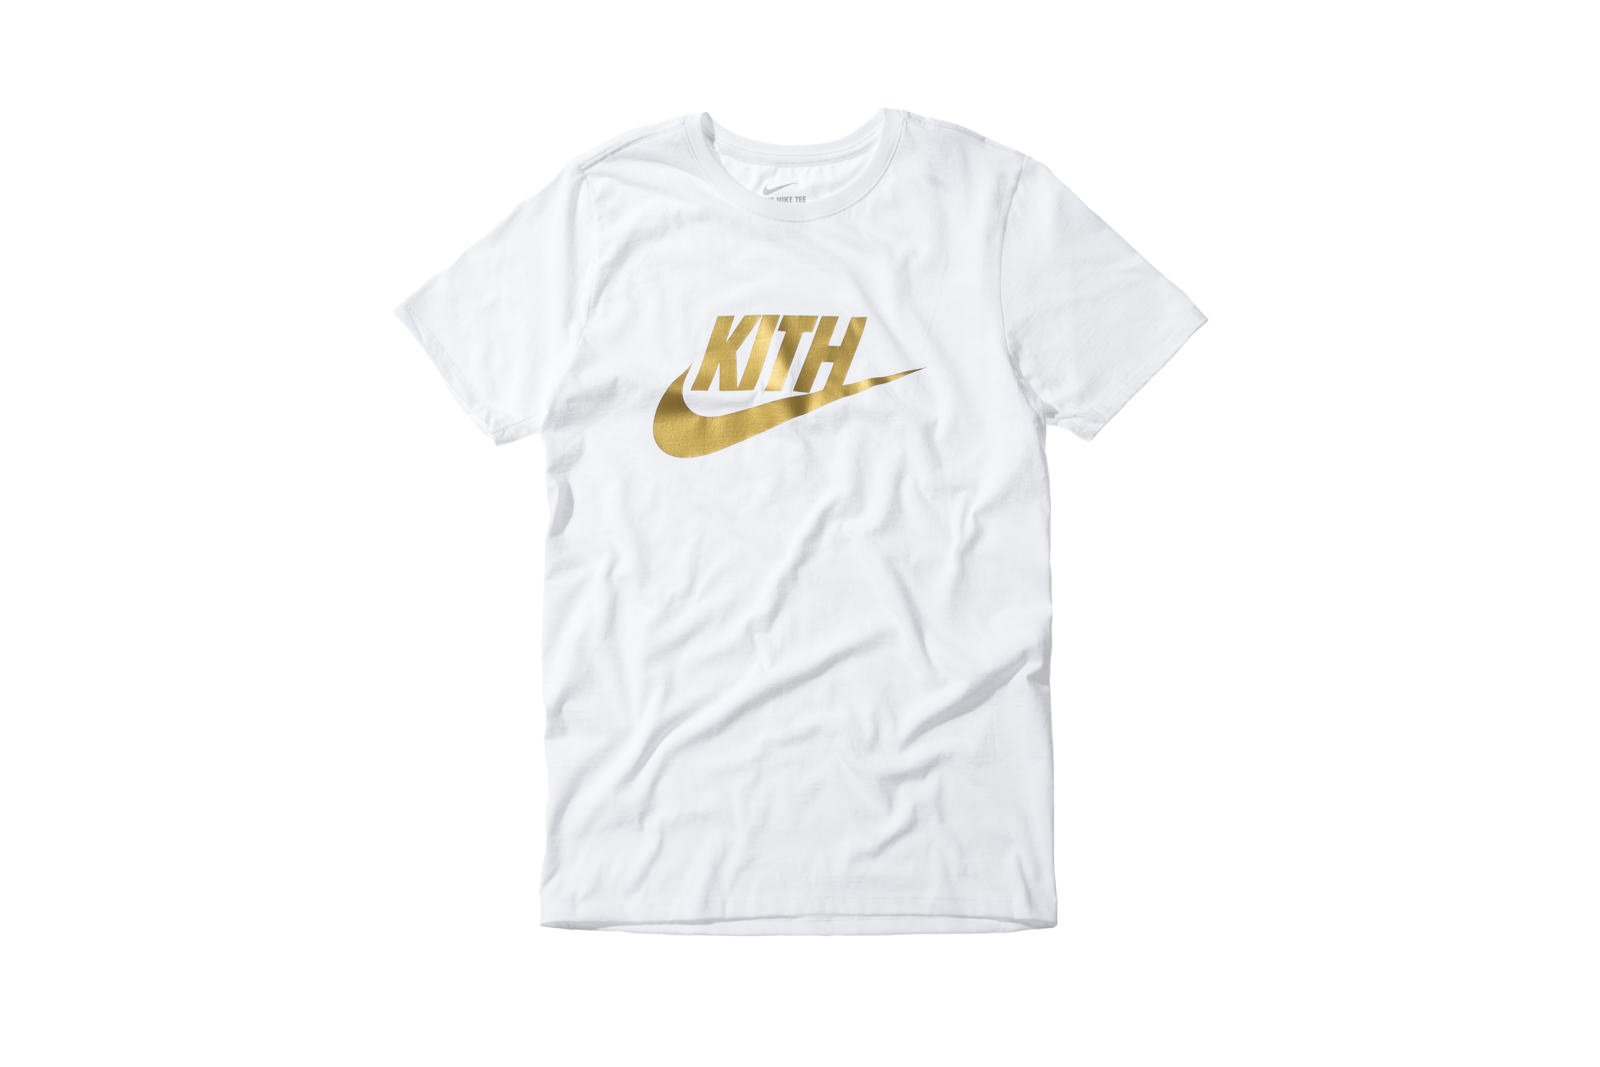 KITH x NIKE Pop-Up Store Tシャツ